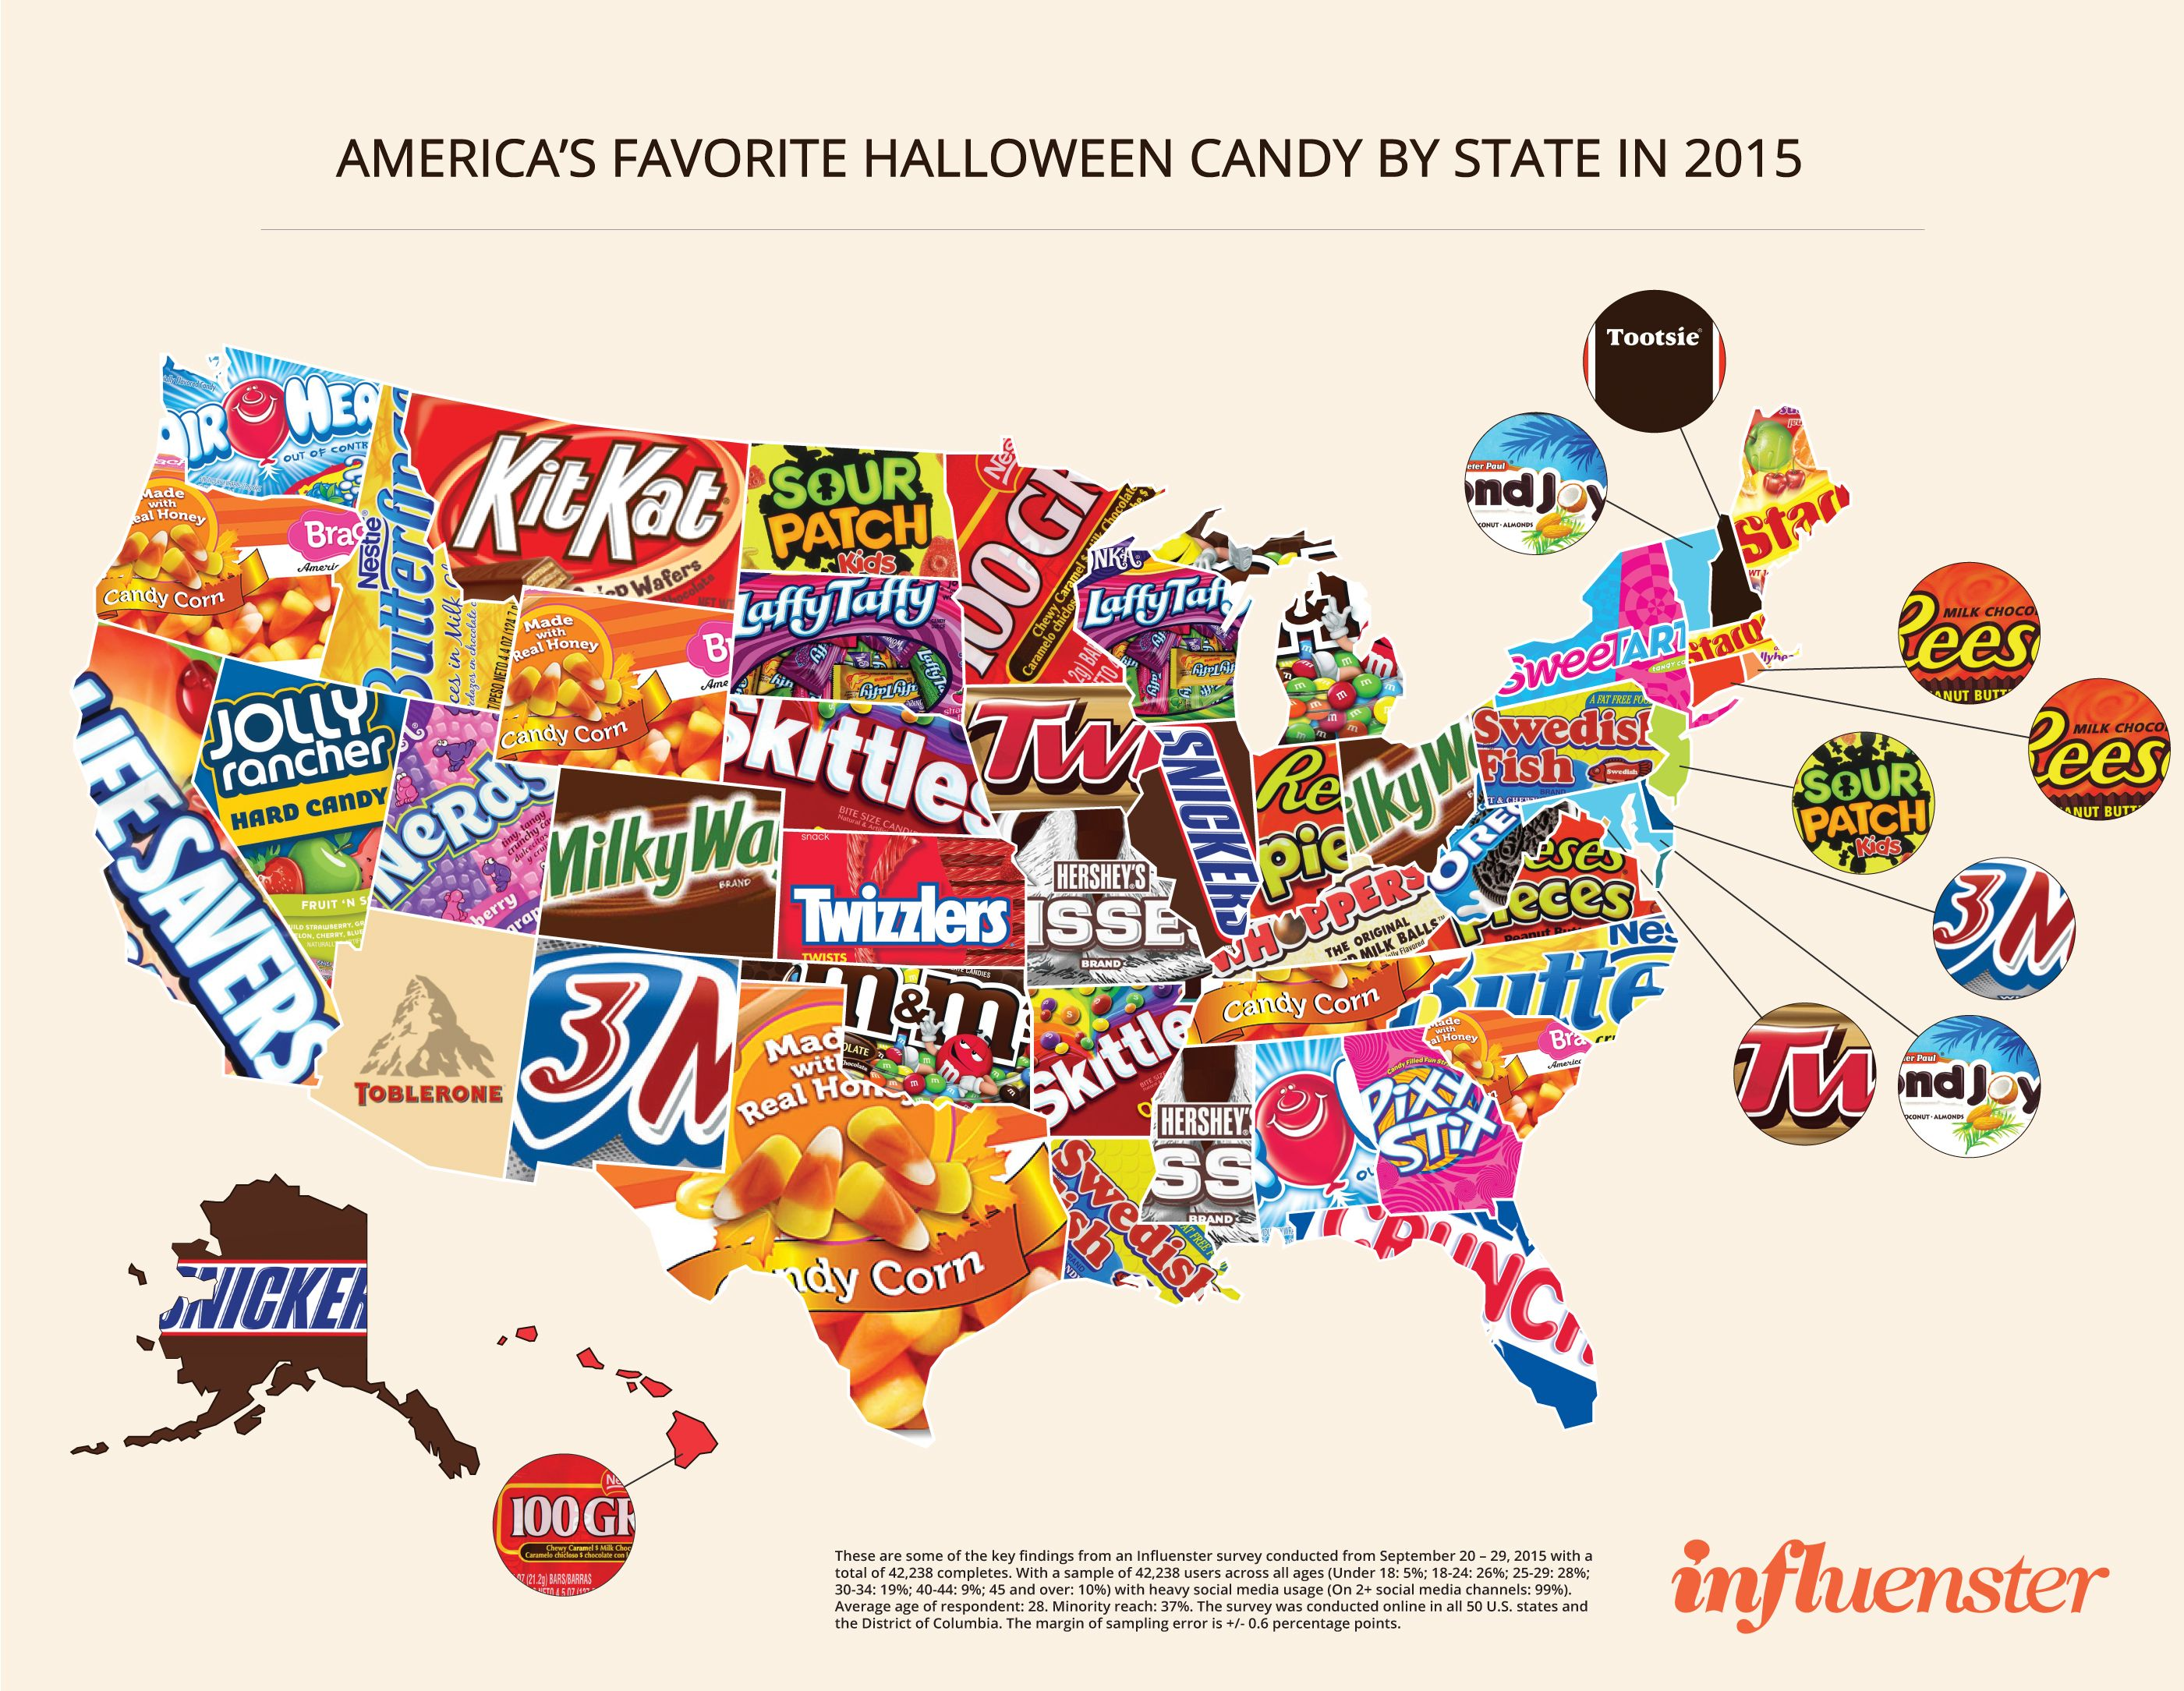 Favorite Halloween Candy By State 2020 America's Favorite Halloween Candy State By State | Best halloween